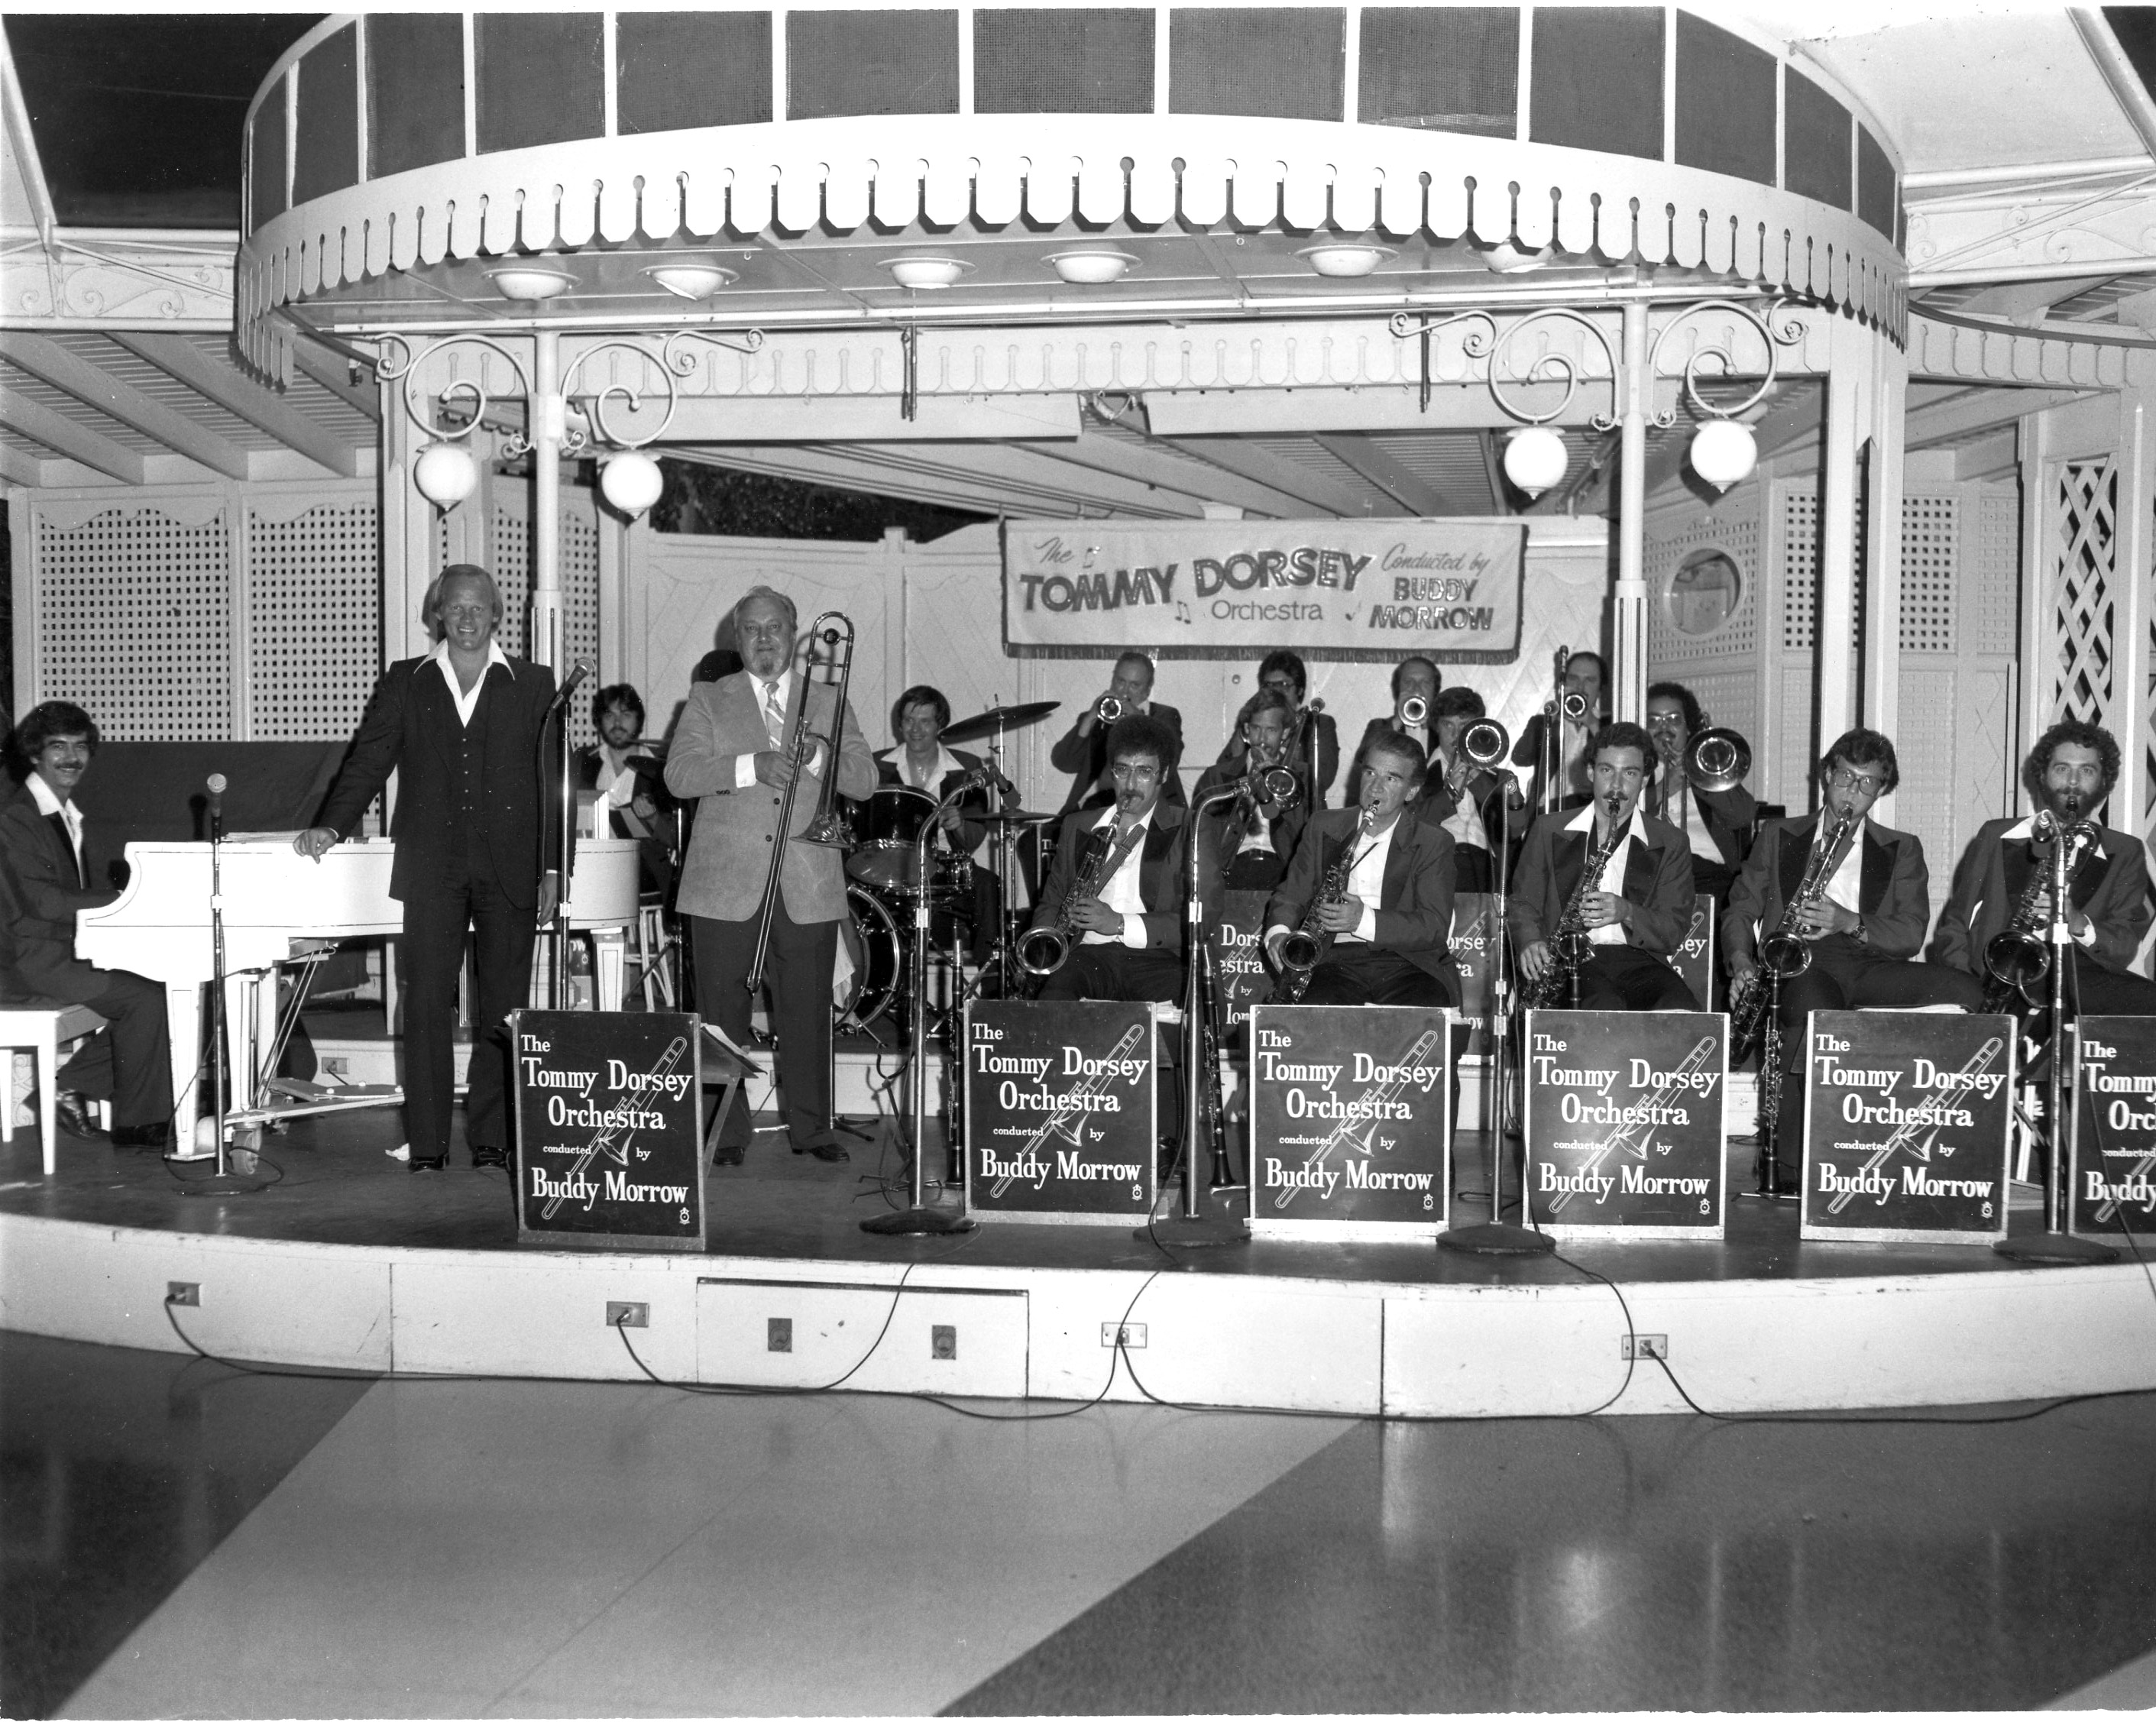 The Official Tommy Dorsey Orchestra